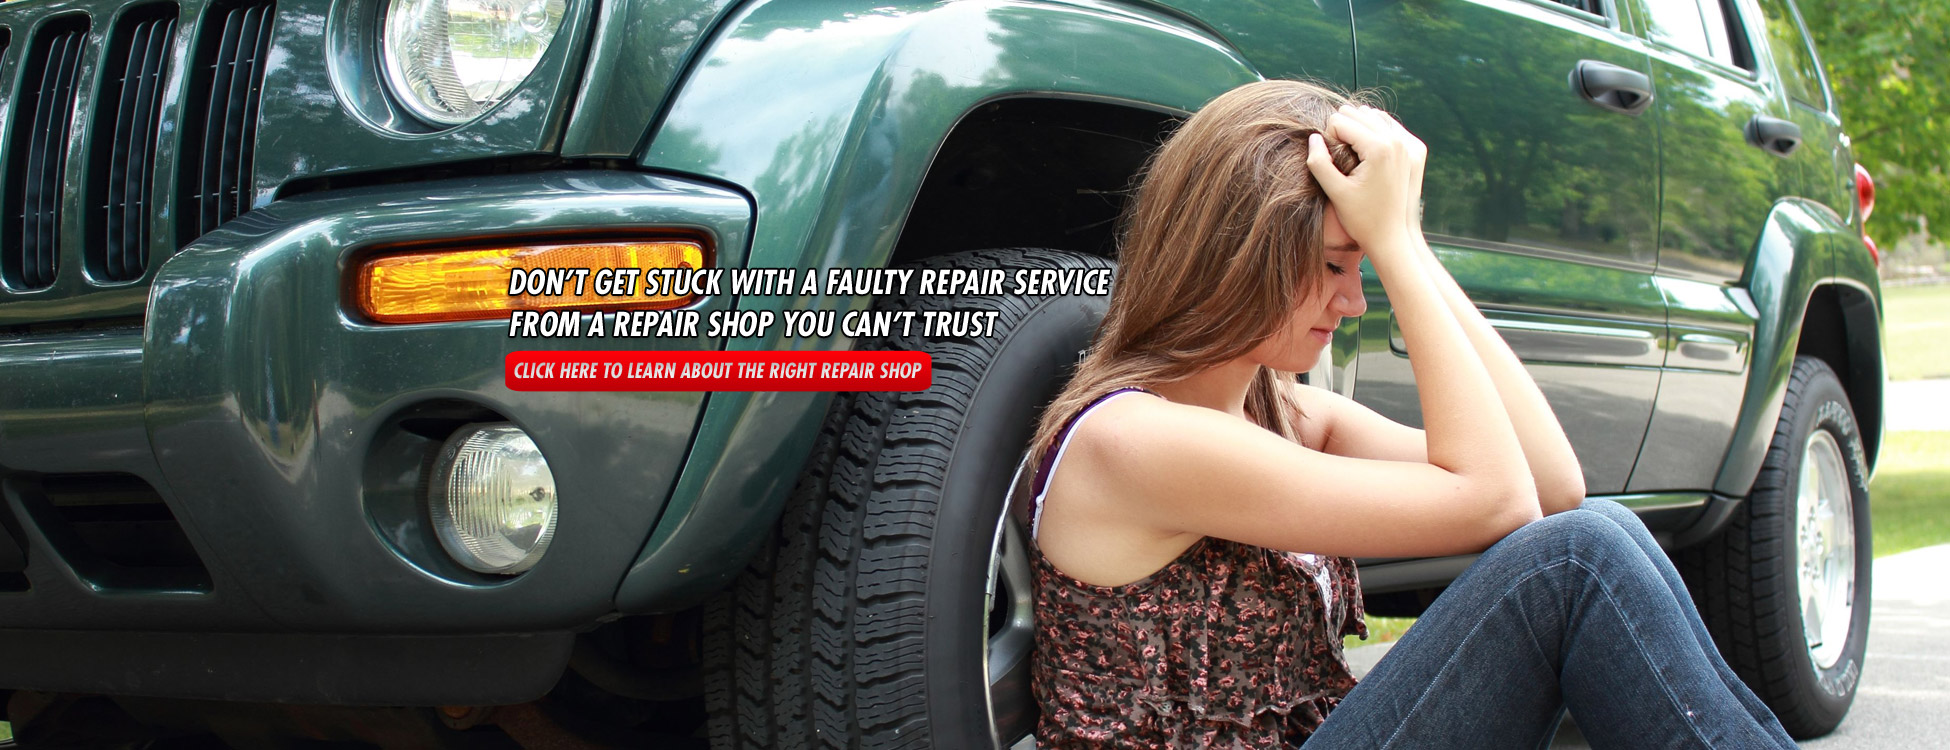 Auto Repairs in Tallahassee, FL